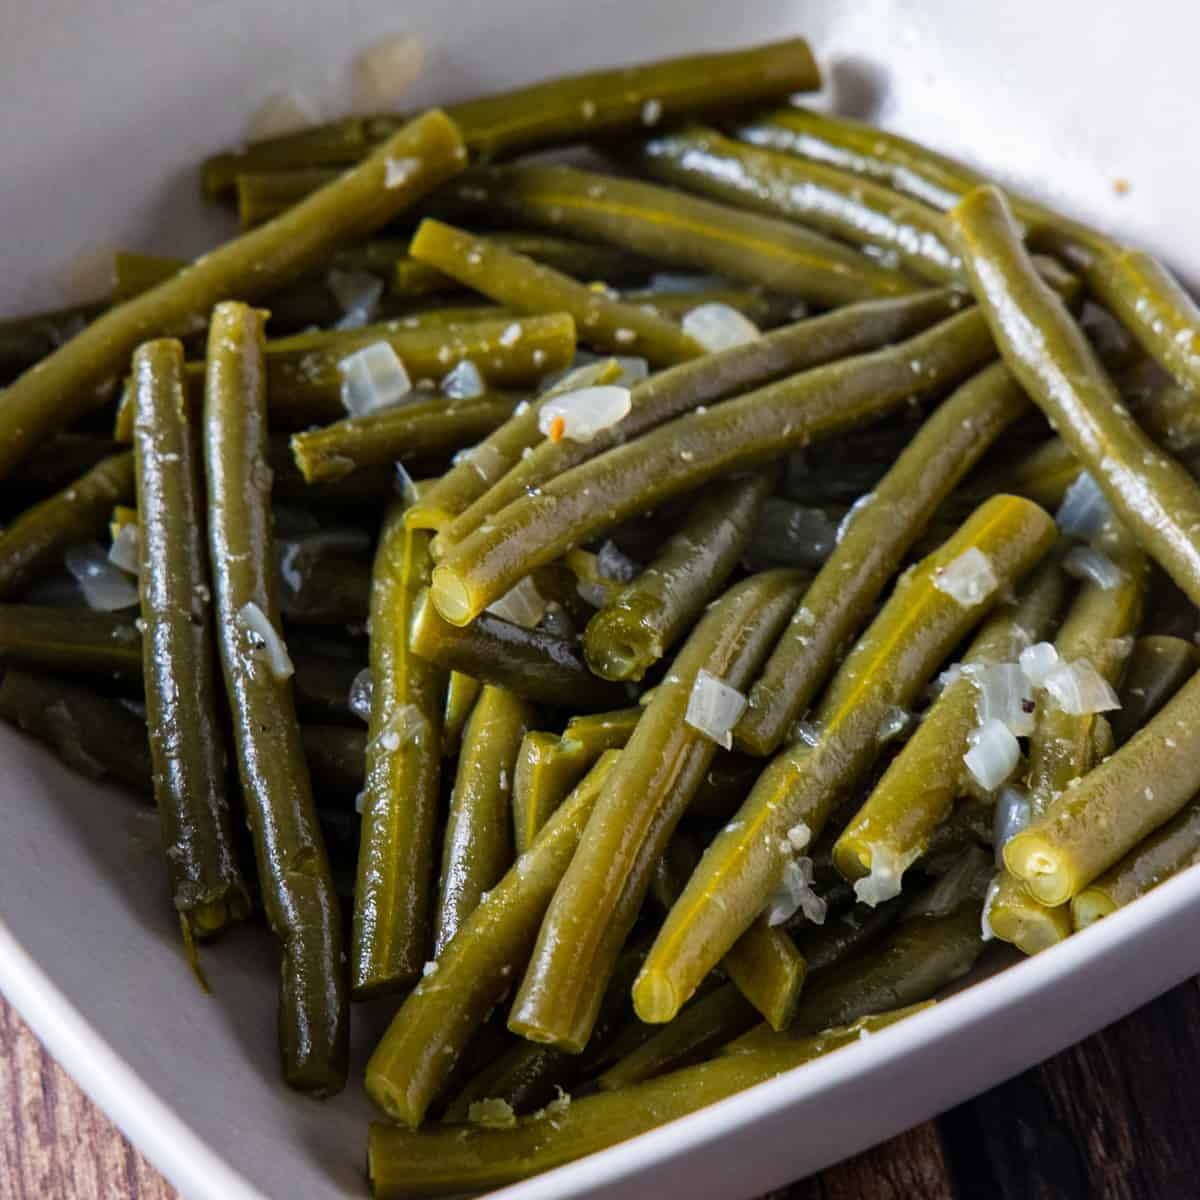 Instant pot Southern style green beans shown in a serving bowl.